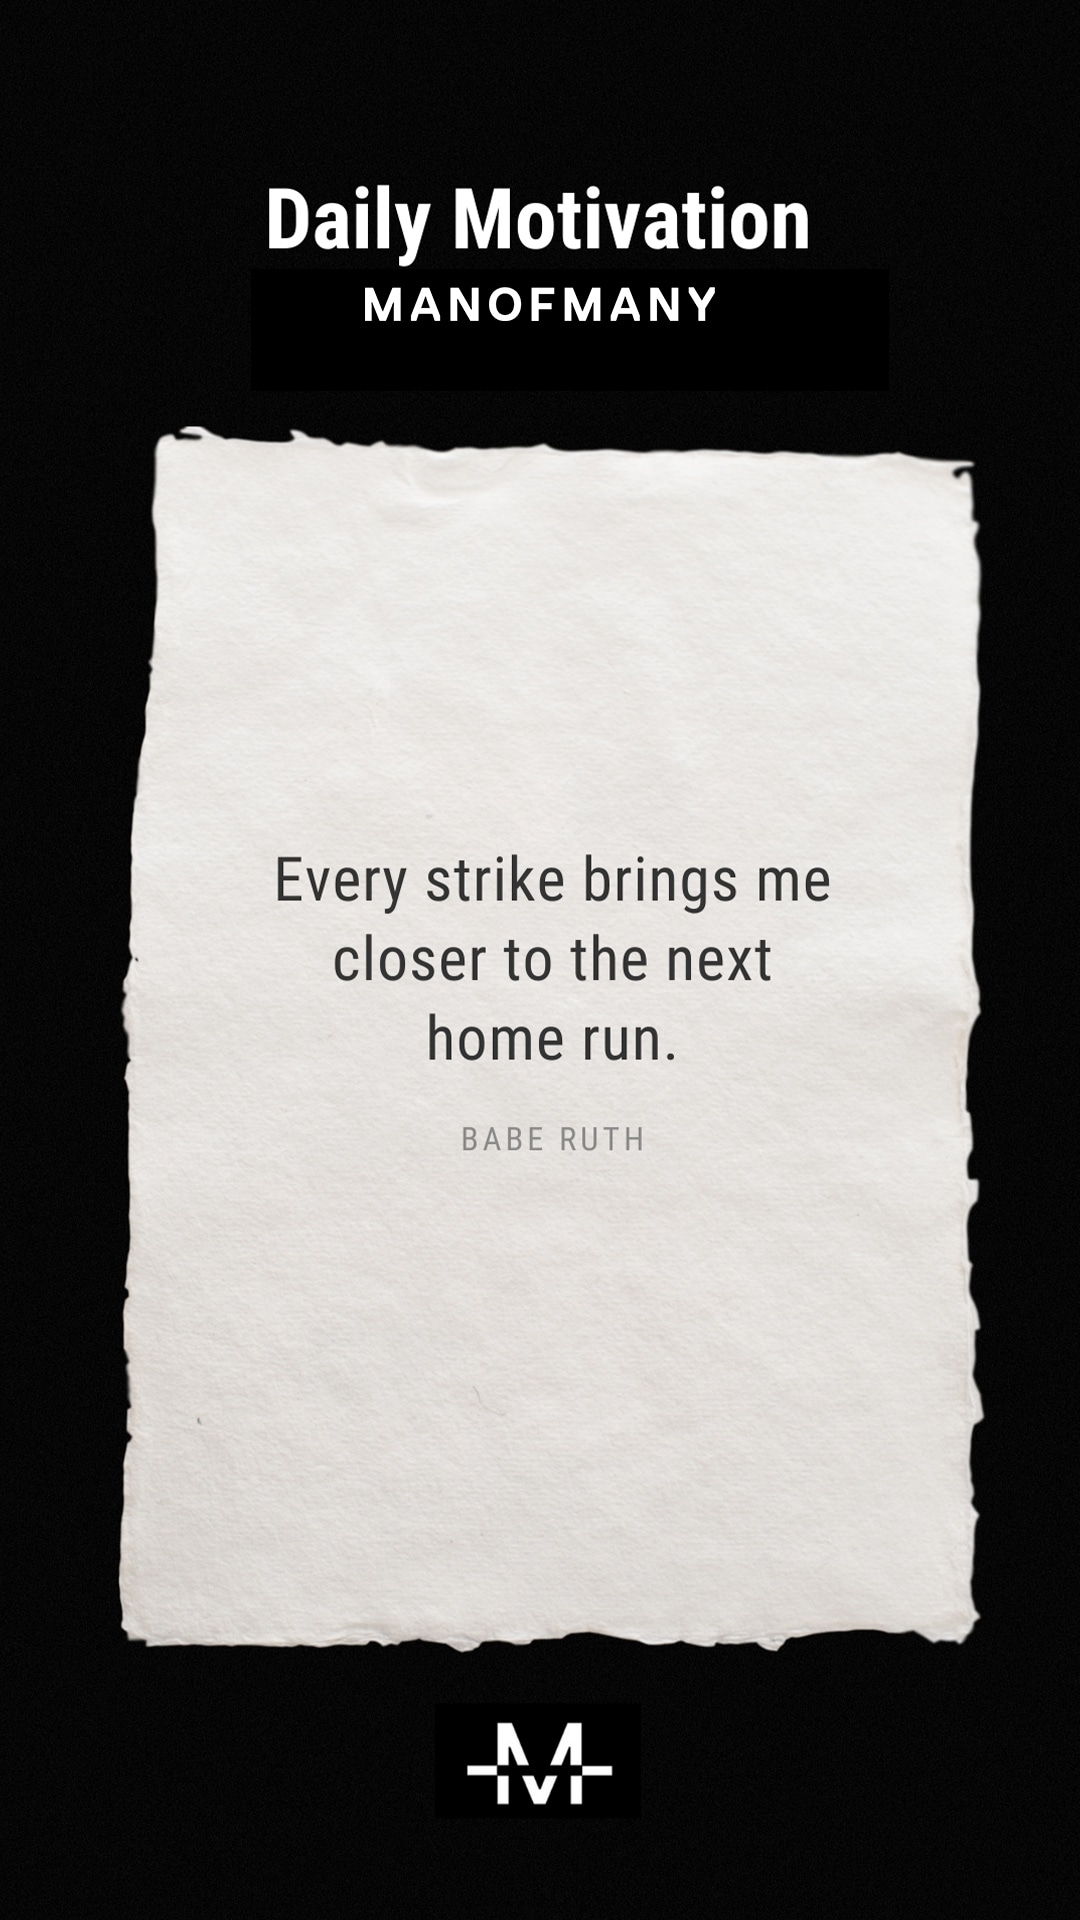 Every strike brings me closer to the next home run. – Babe Ruth quote